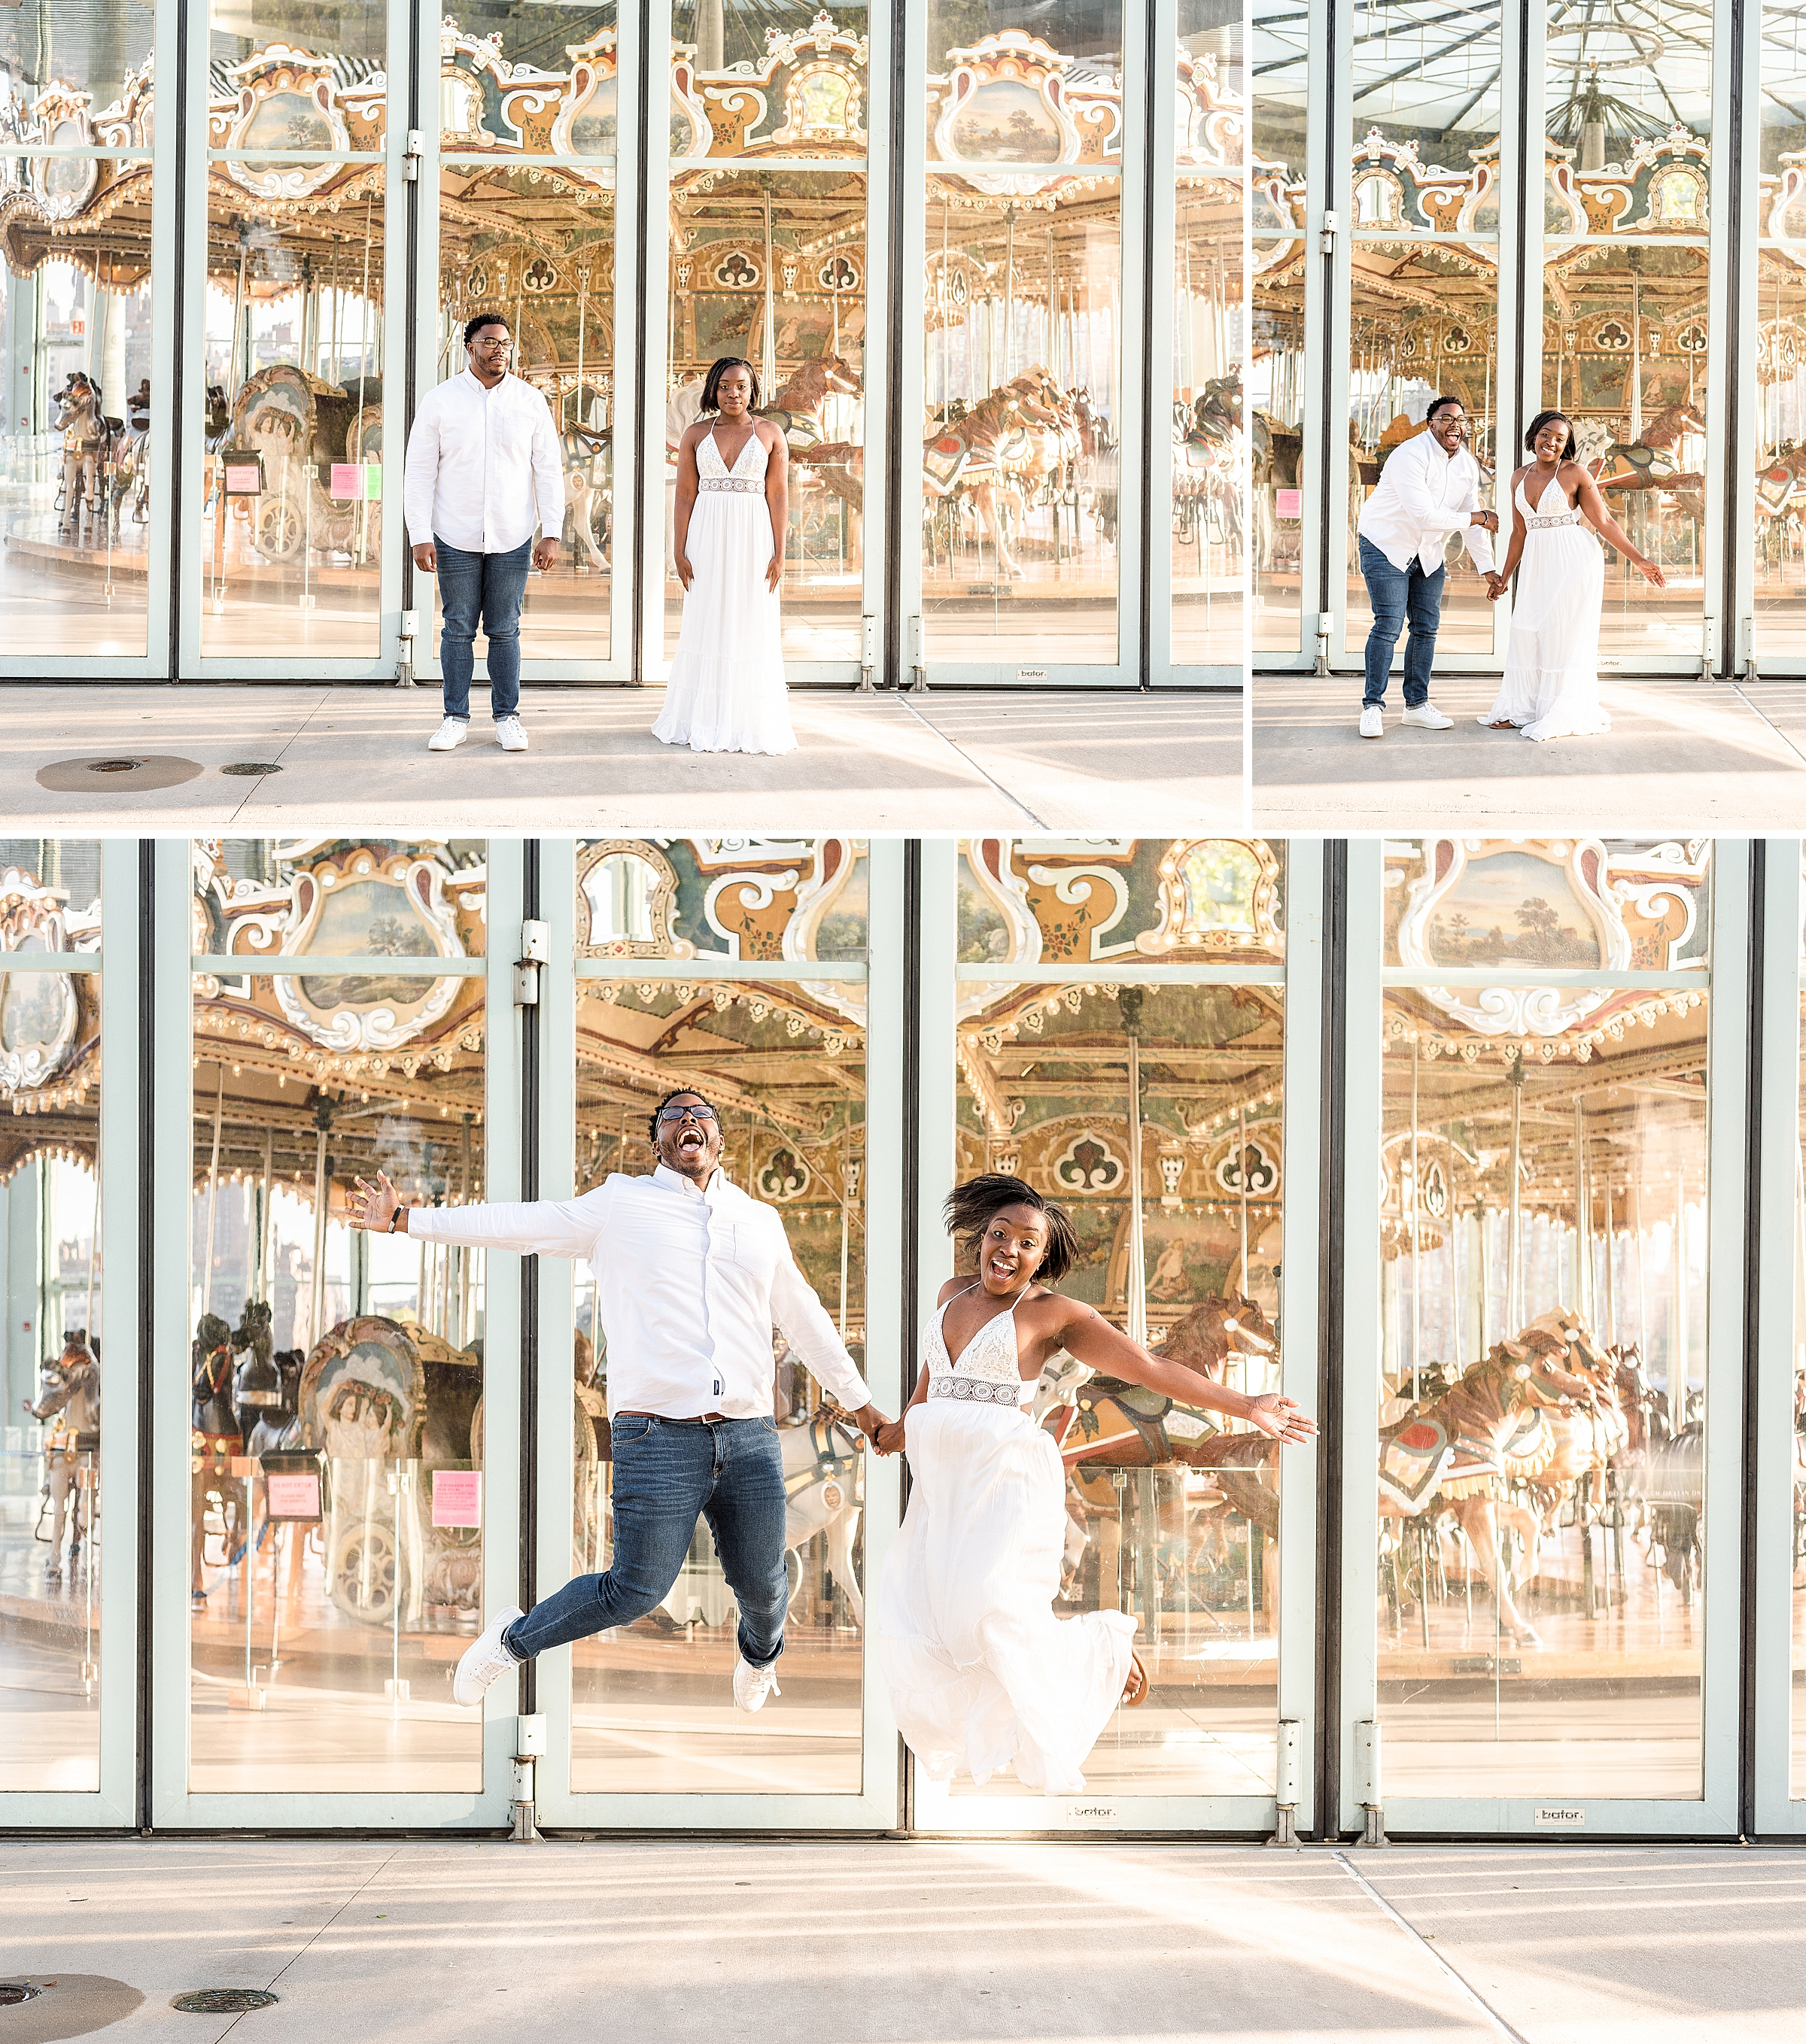 Couple laughing and jumping at Jane's Carousel in DUMBO Brooklyn NYC